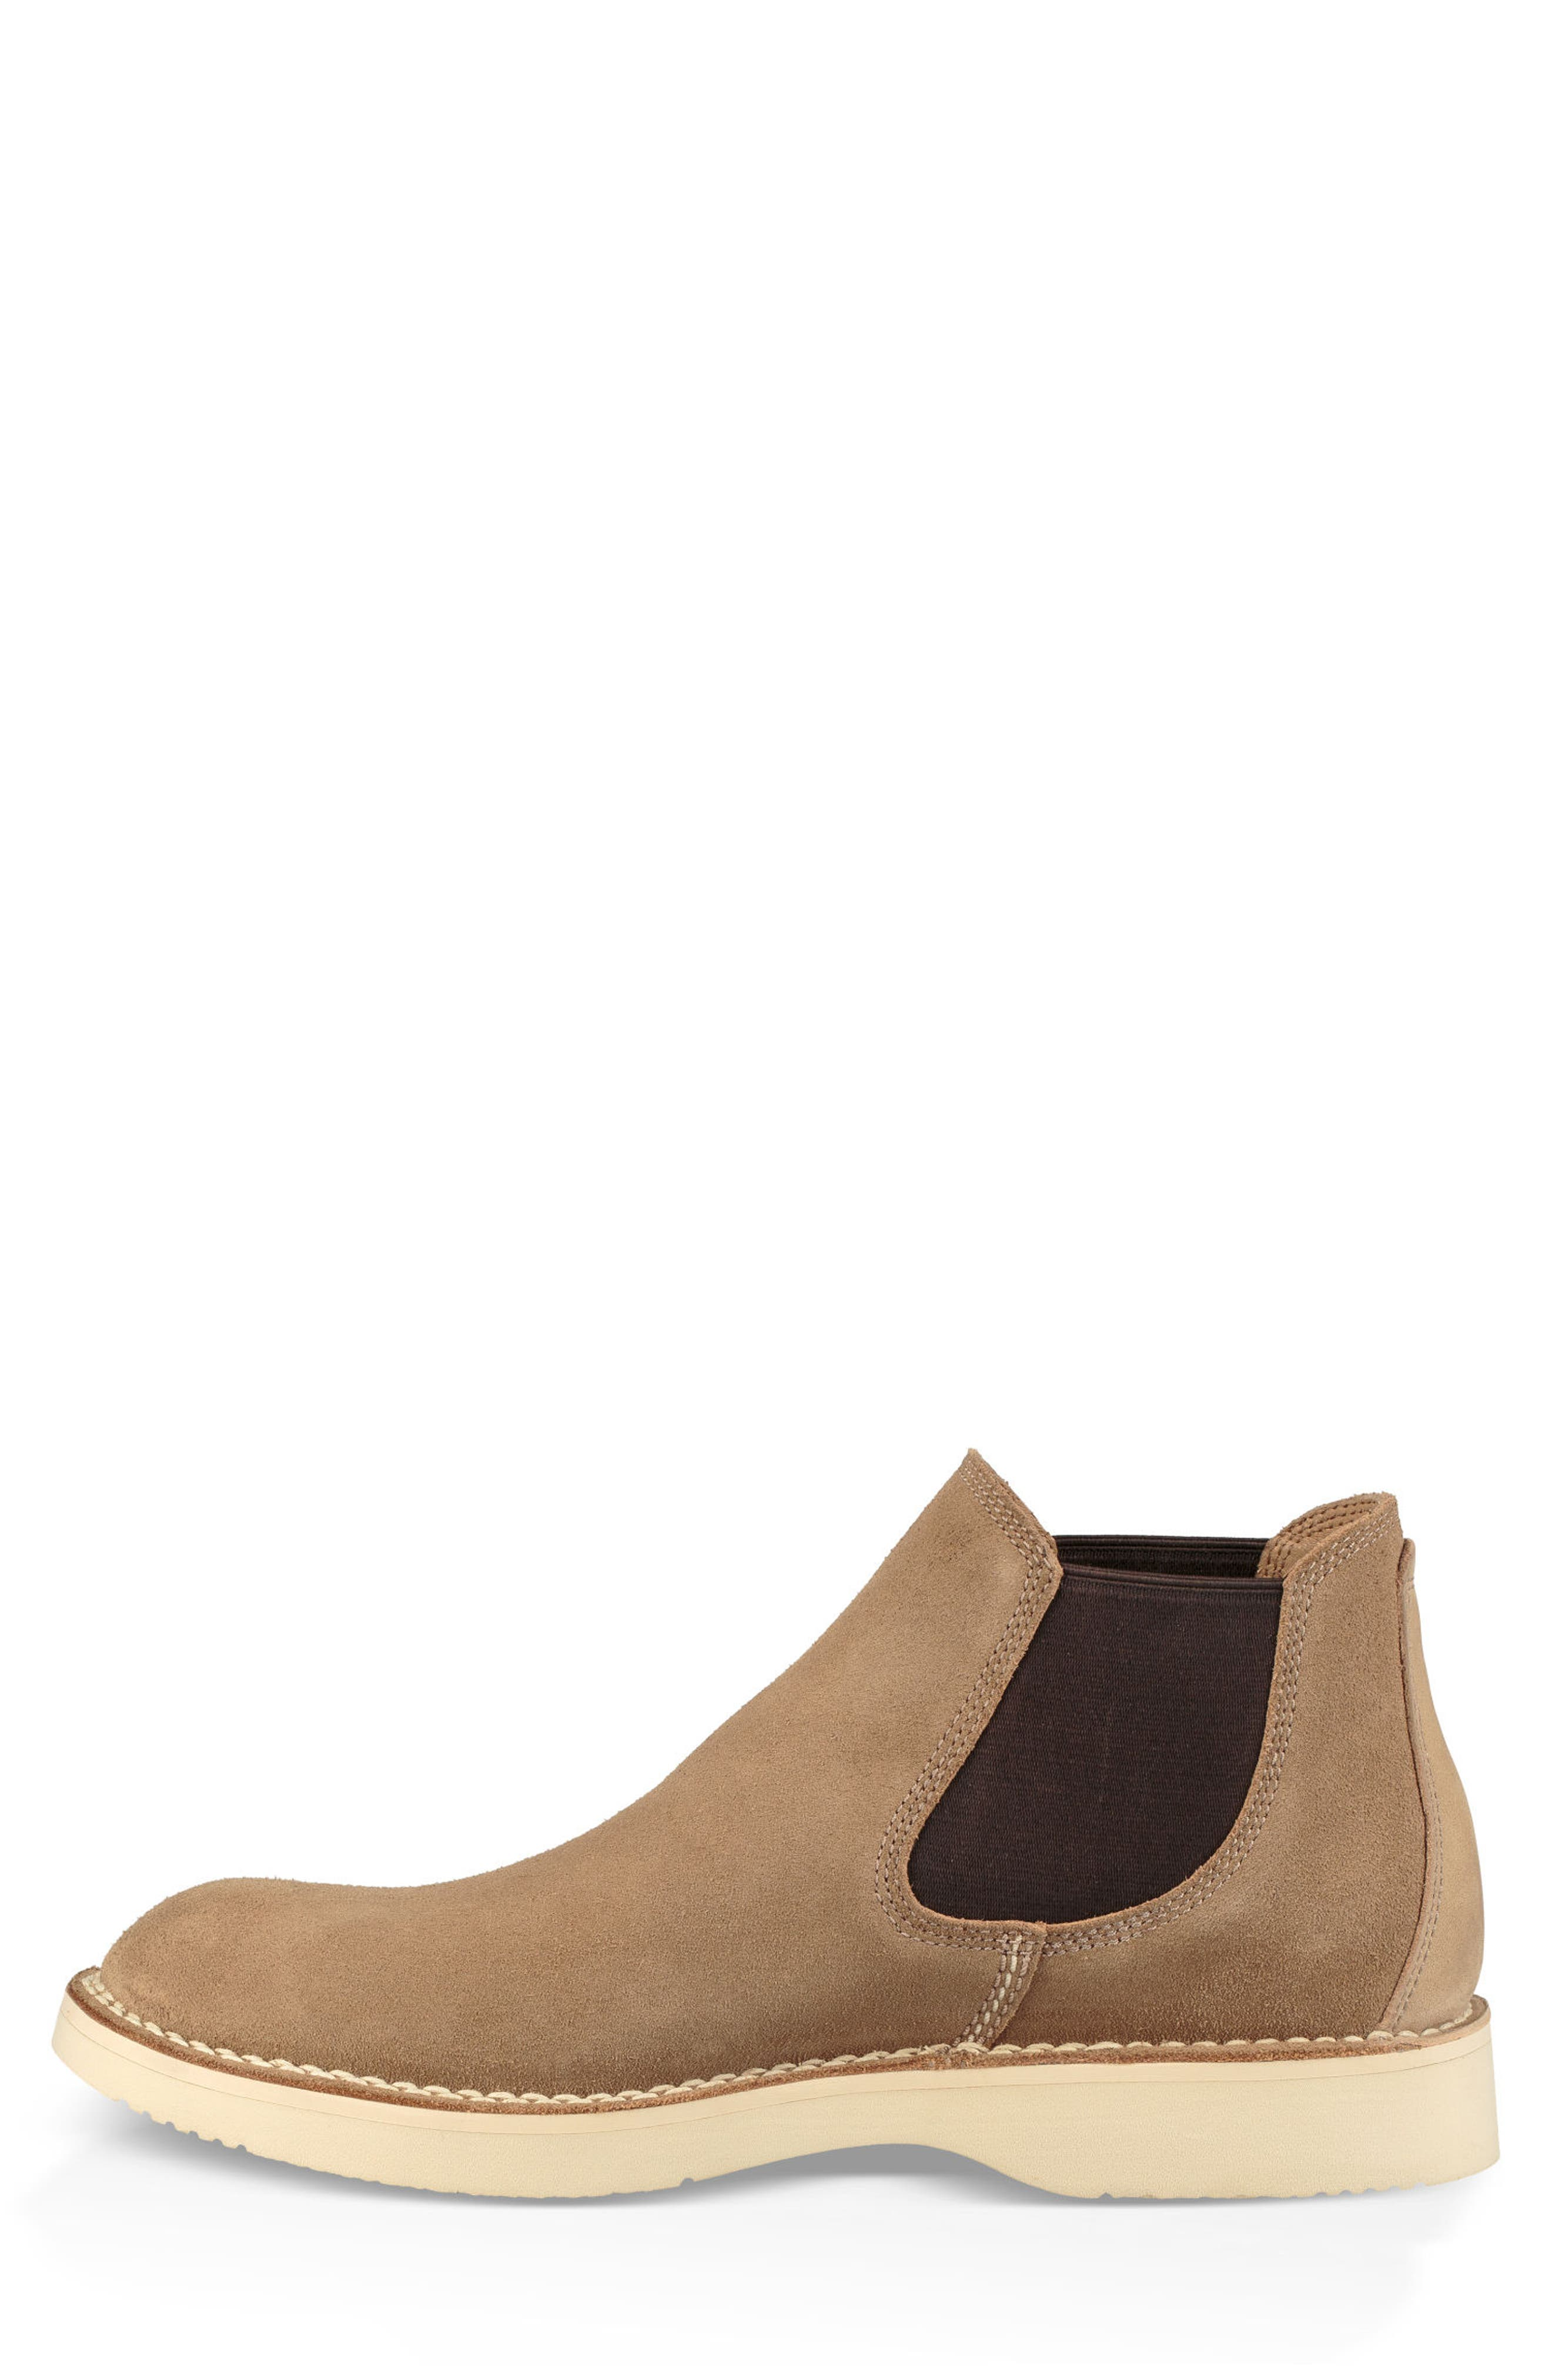 UGG<SUP>®</SUP>, Camino Chelsea Boot, Alternate thumbnail 3, color, DESERT TAN